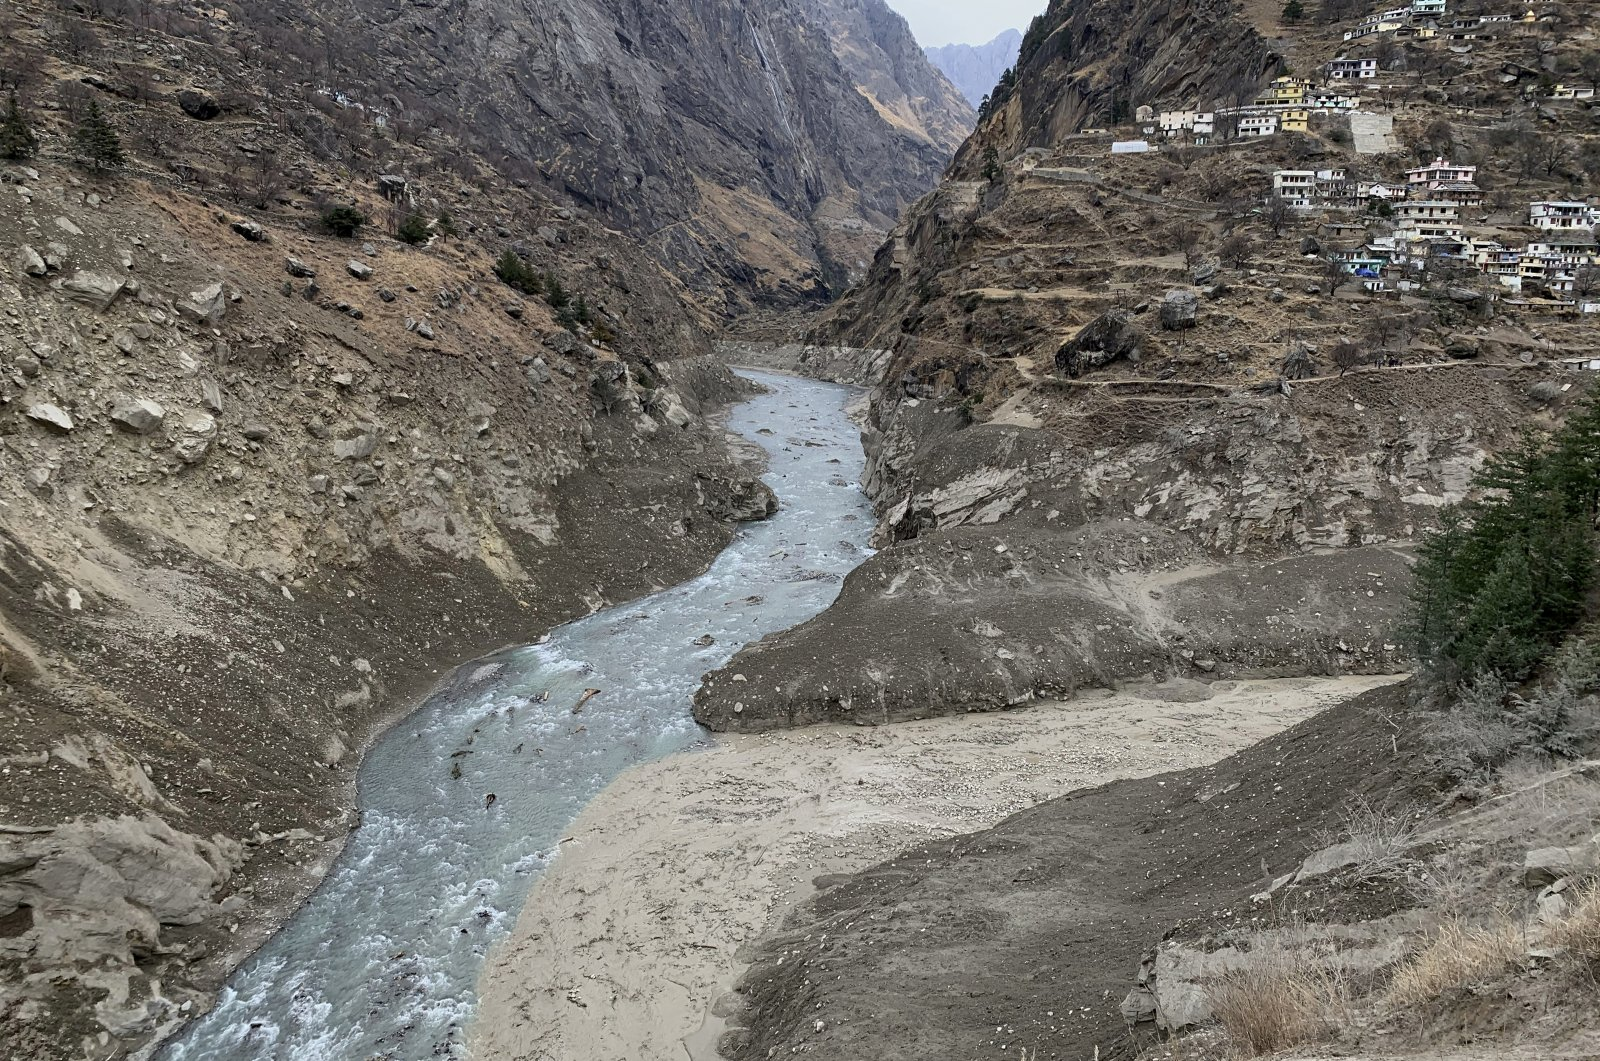 Muddy water flows into Alaknanda river two days after a part of a Himalayan glacier broke off sending a devastating flood downriver in Tapovan area of the northern state of Uttarakhand, India, Tuesday, Feb. 9, 2021. (AP Photo)